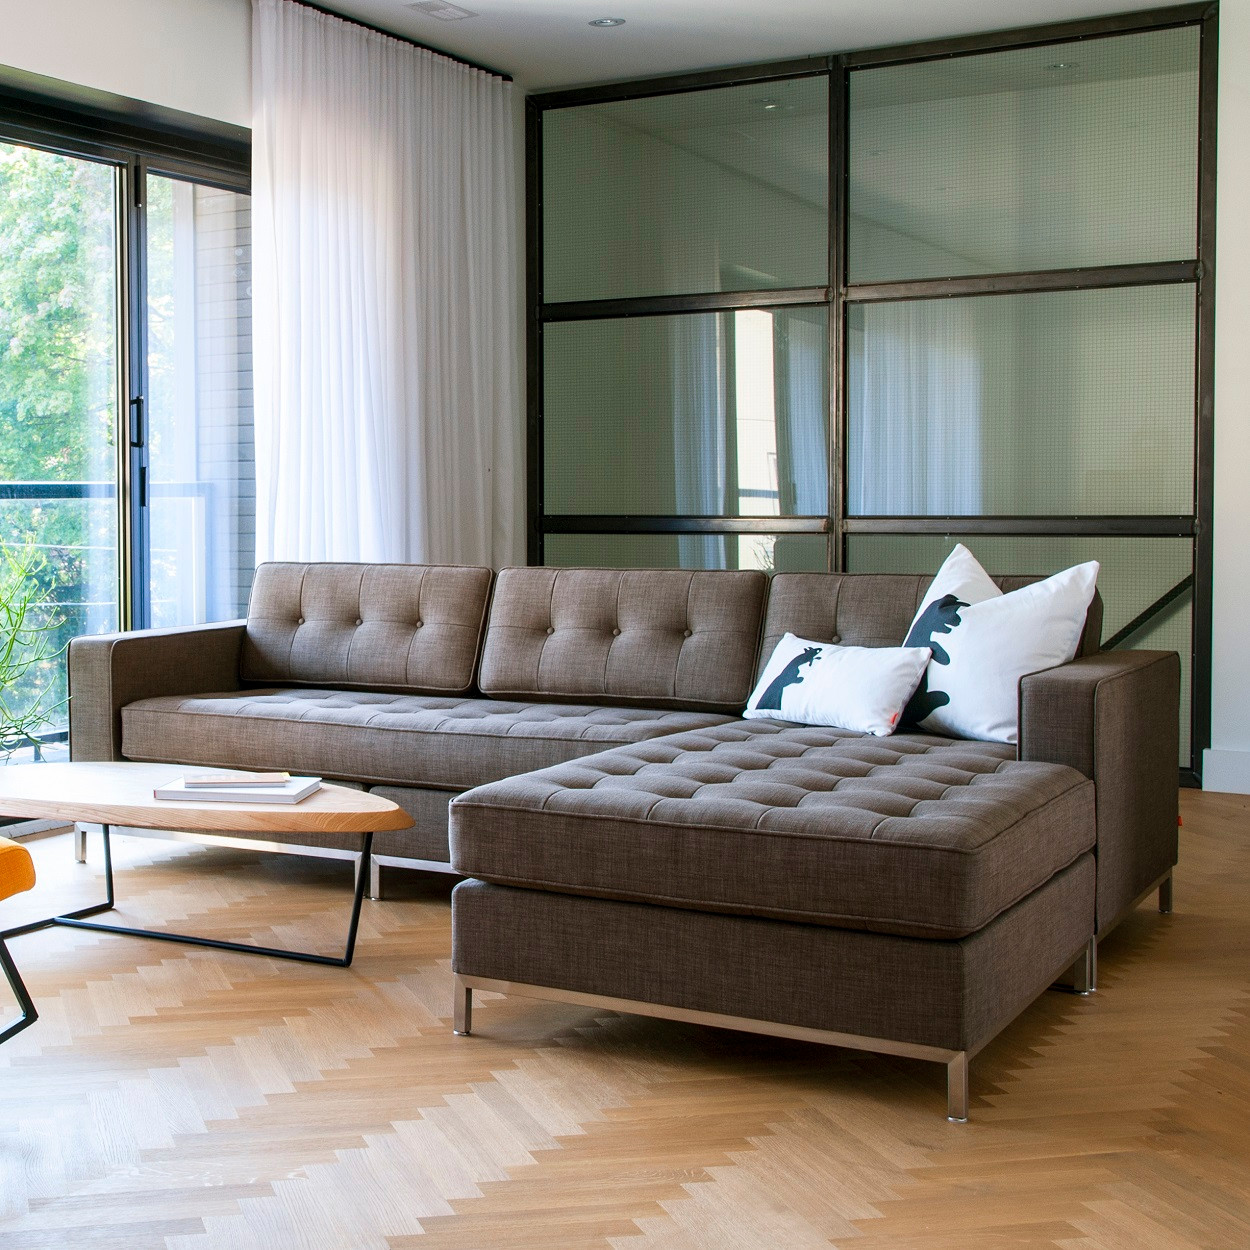 Gus modern Jane Bi-Sectional Sofa : jane bi sectional - Sectionals, Sofas & Couches